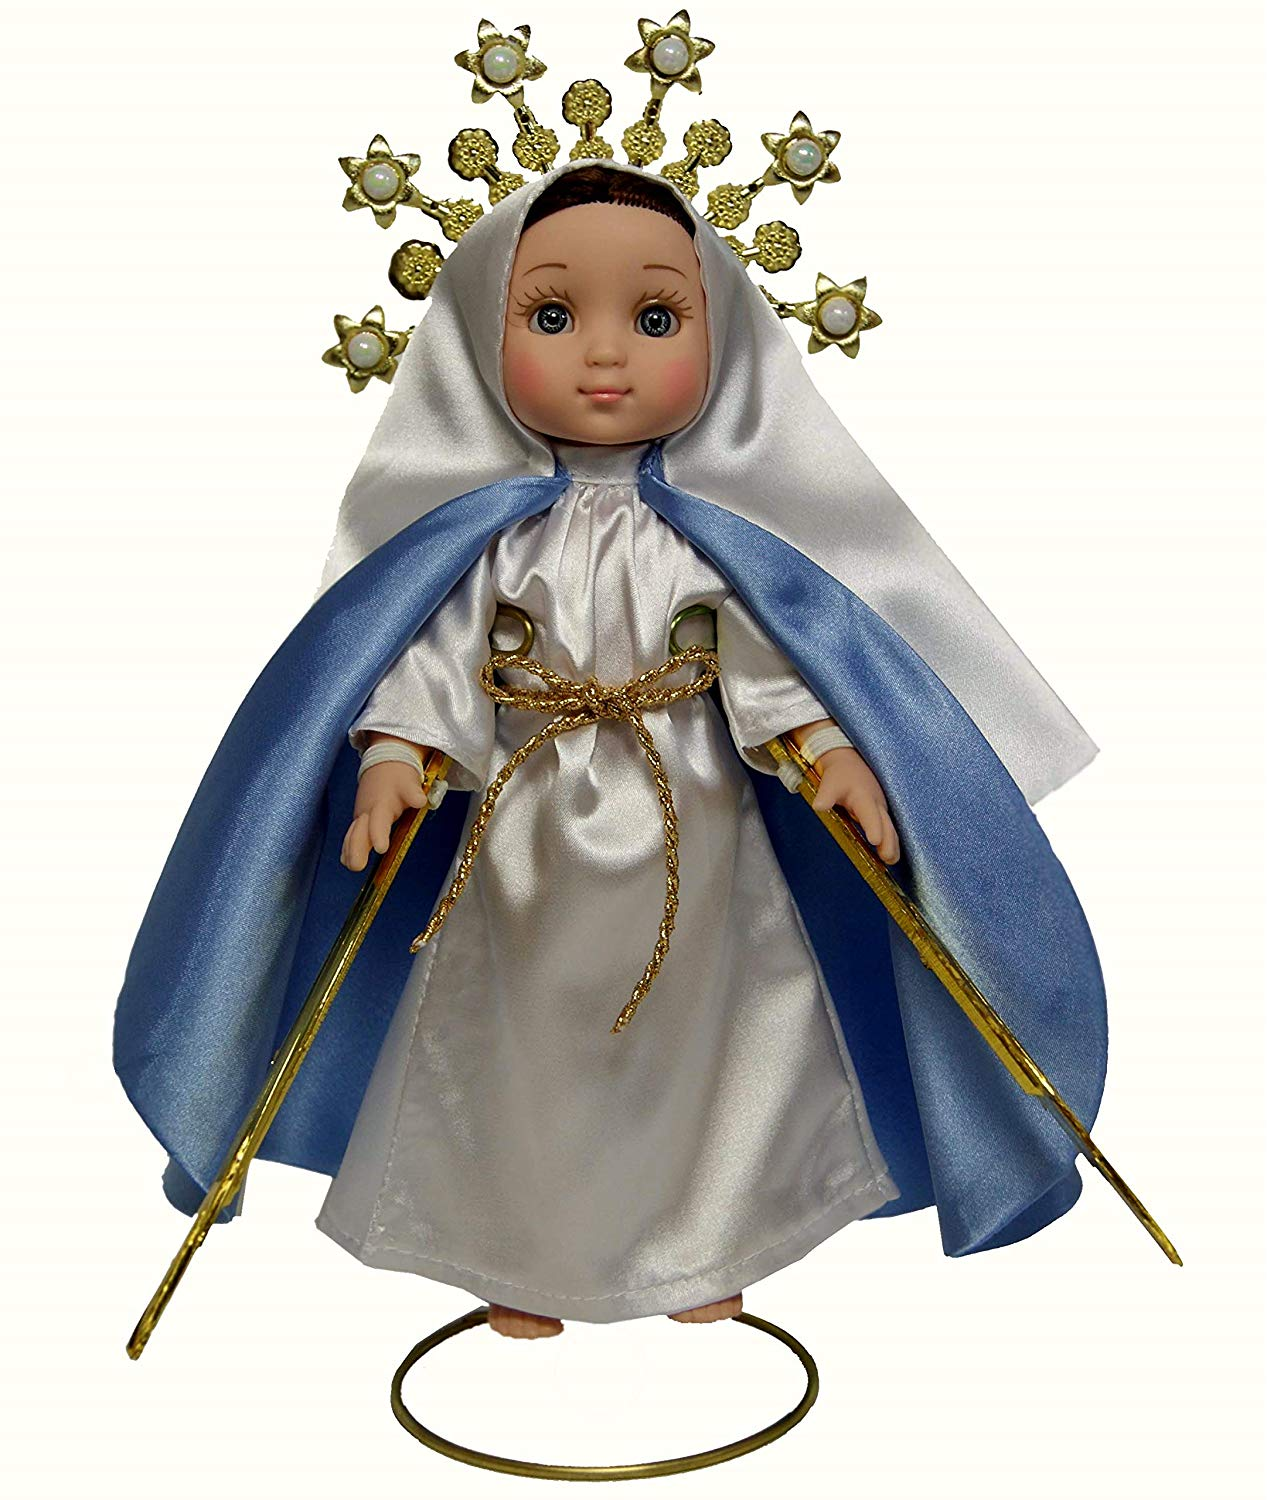 MARIA CONTIGO / Our Lady of The Miraculous Medal 1'' Doll with Rosary / Virgin Mary Mexican Doll, by Maria Contigo Ostler Collection